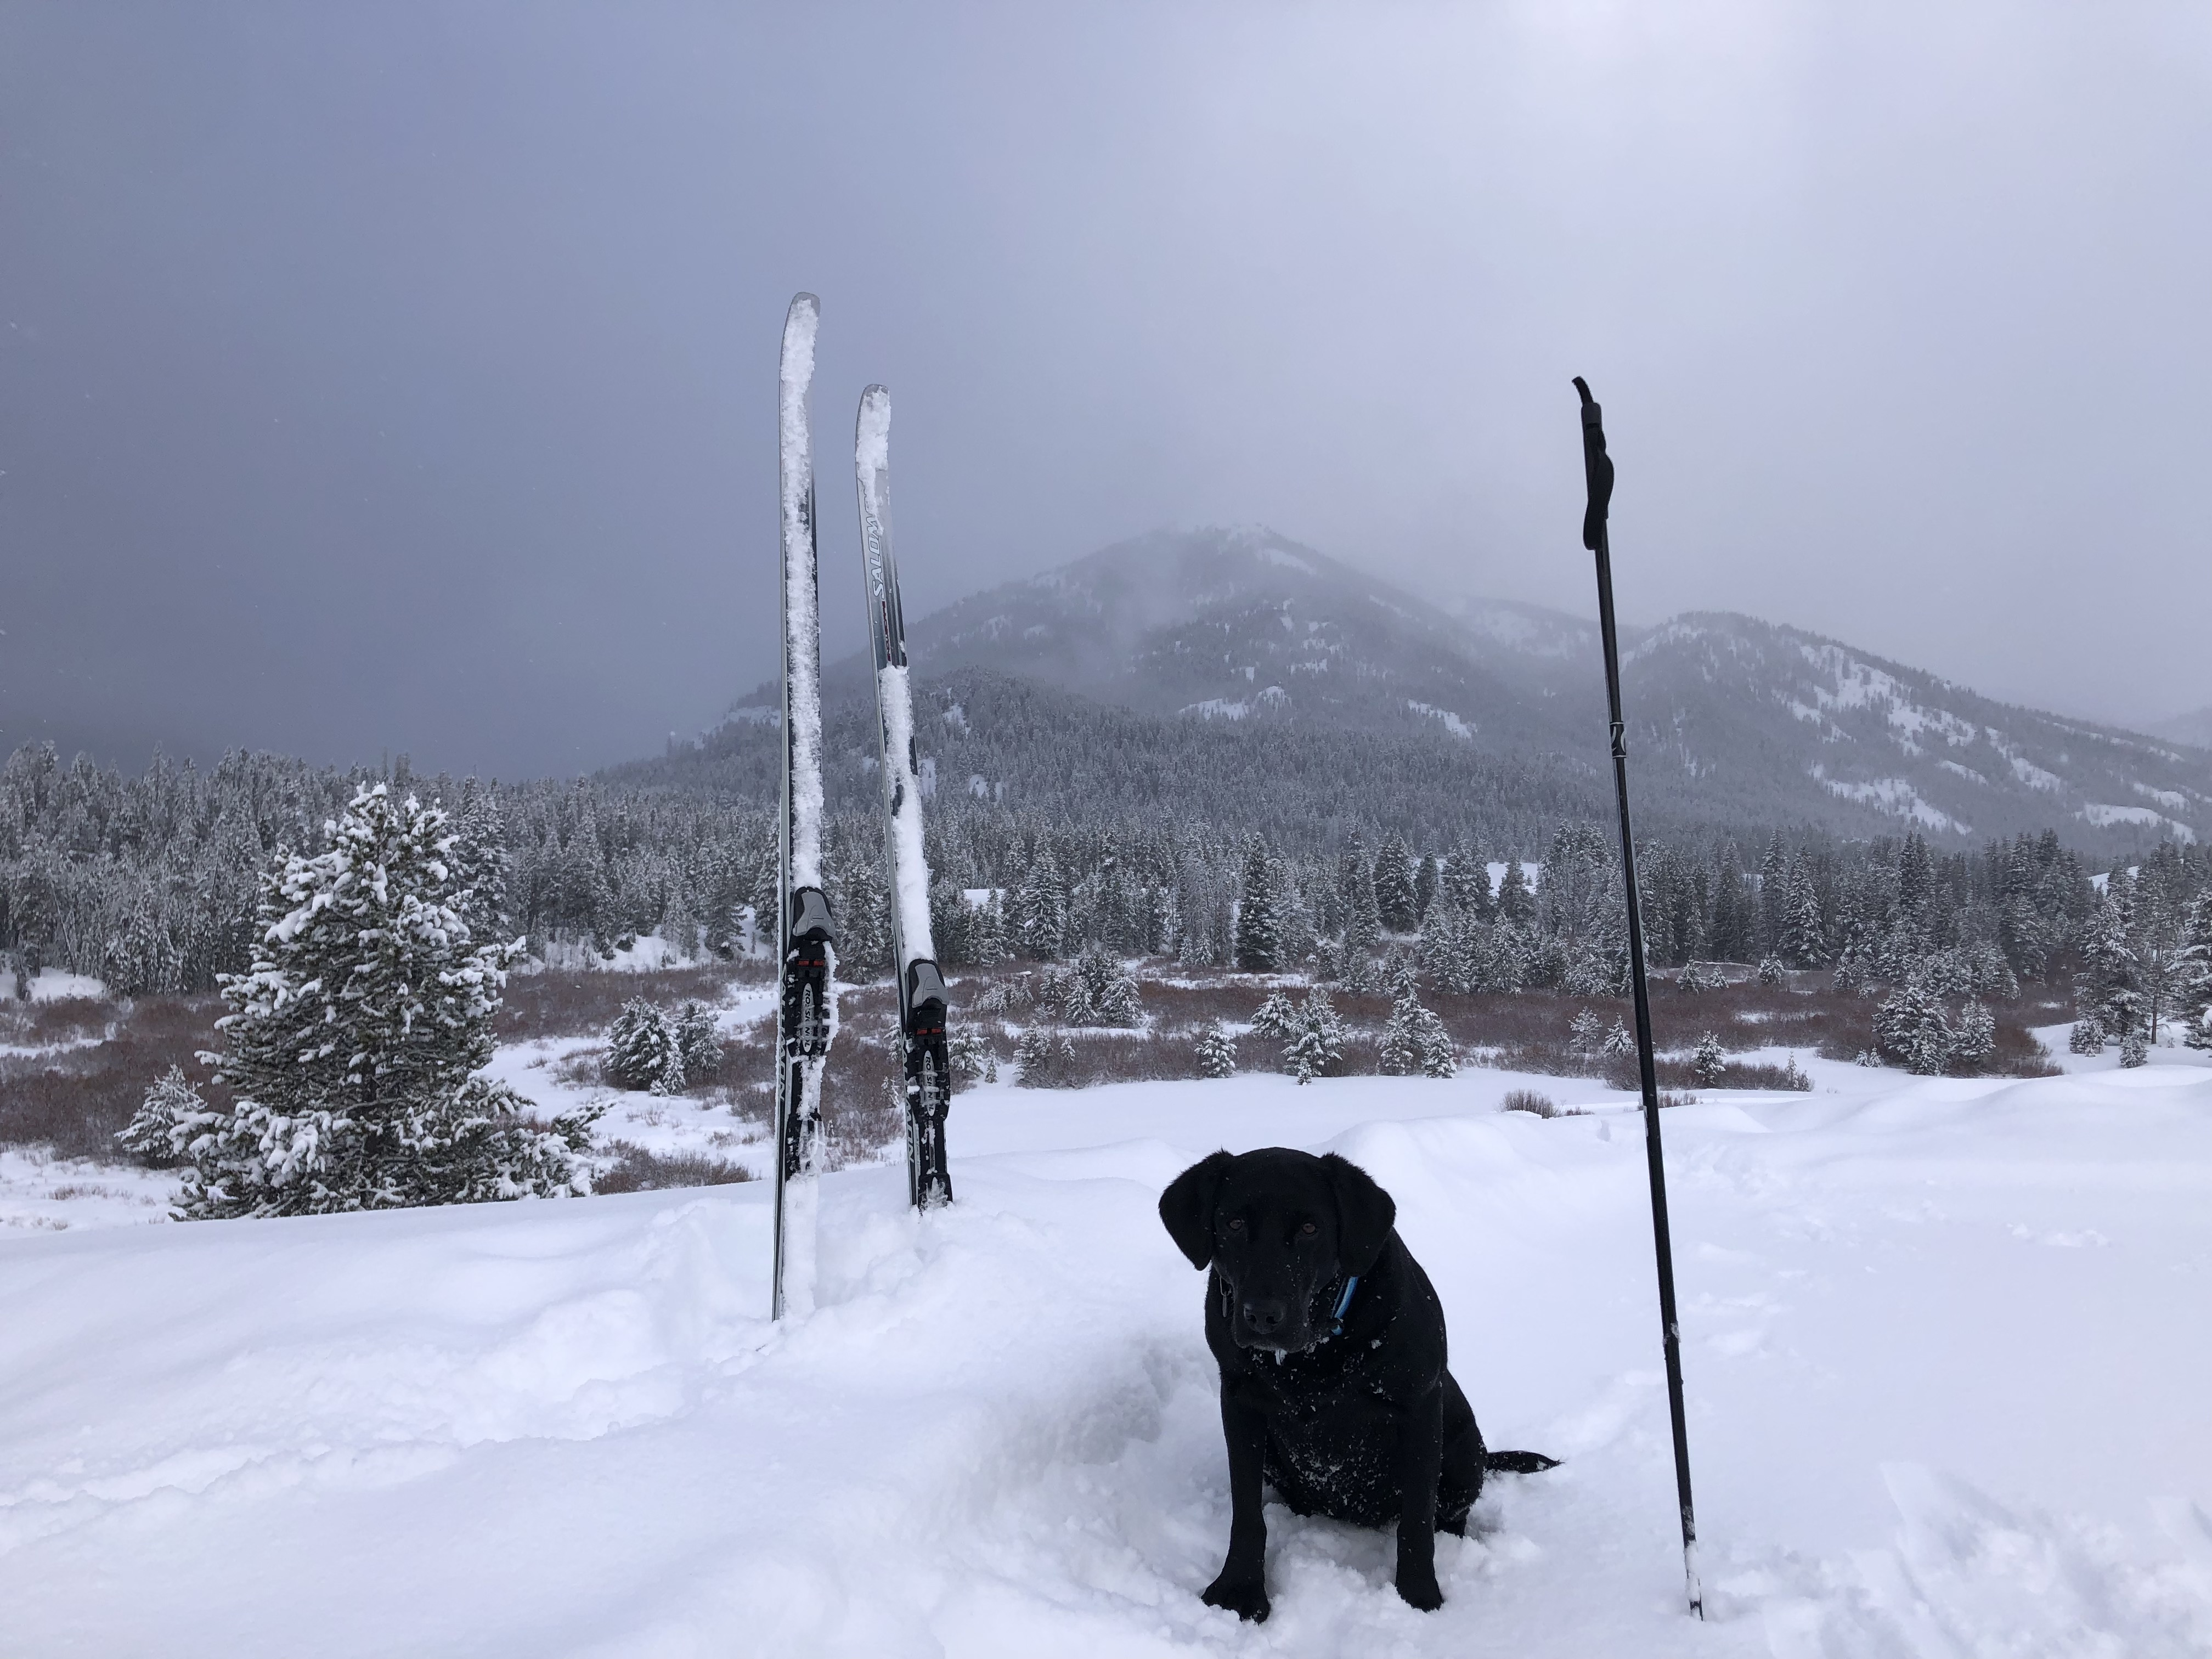 Home On The Range #14: No Roads? Snow Problem With Nordic Skis